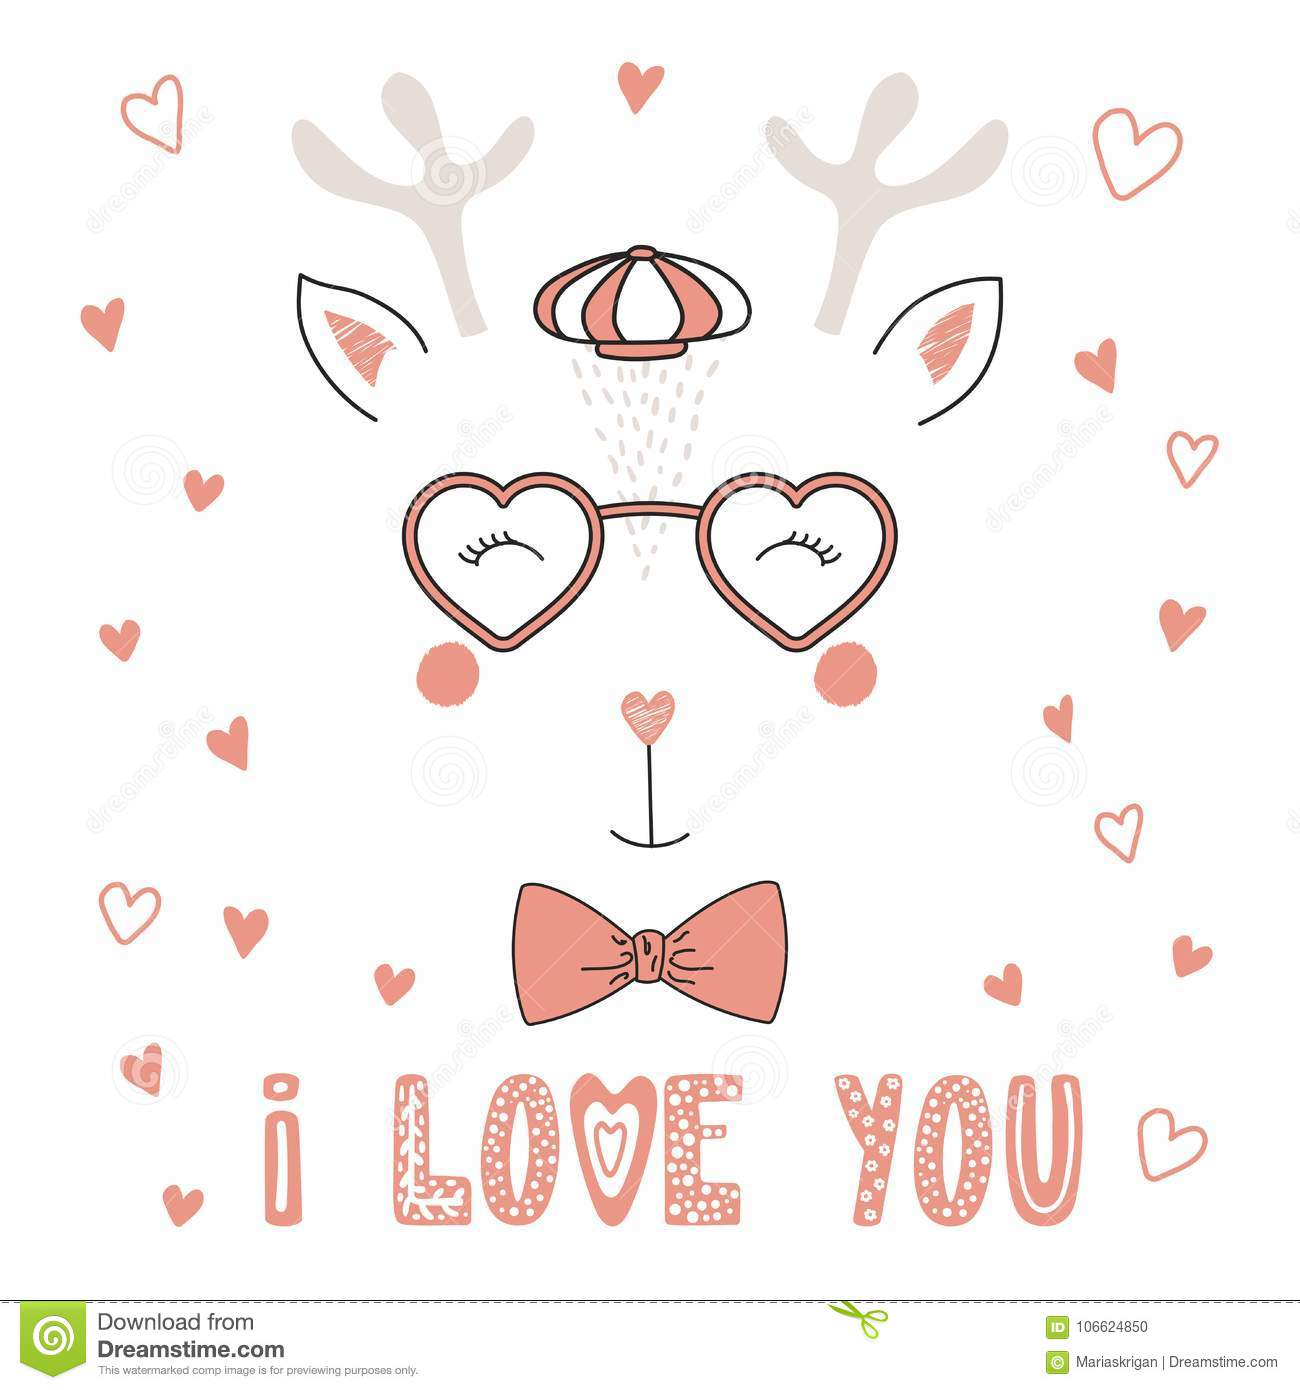 bb298acb3f Cute Reindeer In Heart Shaped Glasses Stock Vector - Illustration of ...